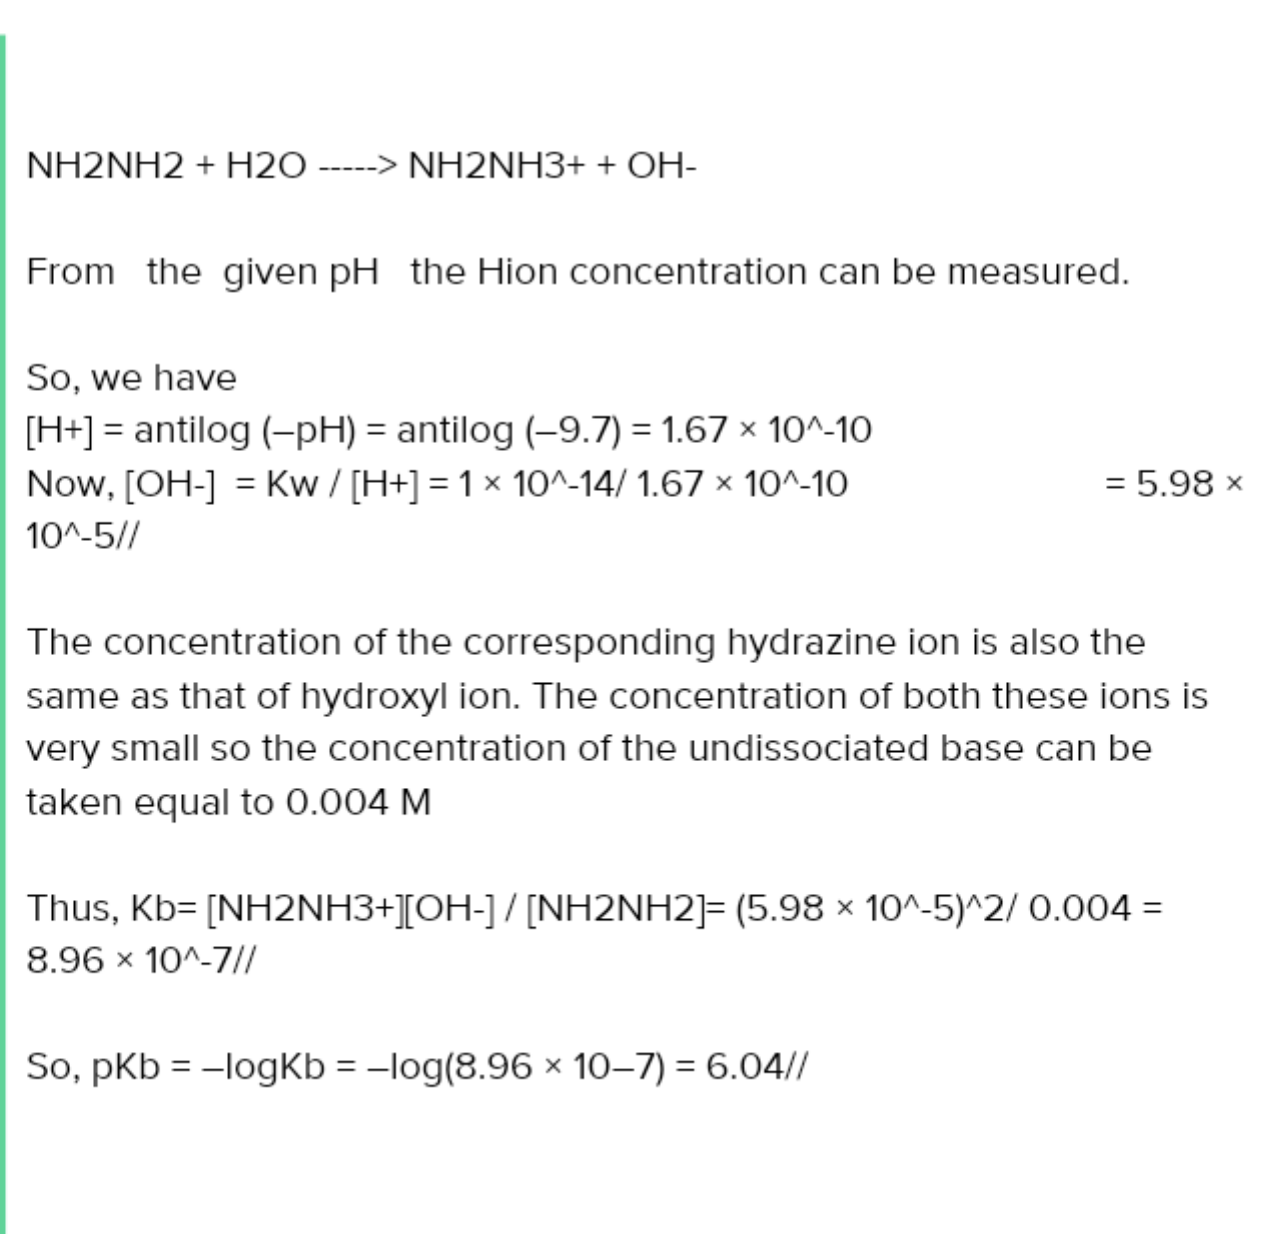 The pH of 0.004M hydrazine solution is 9.7. Calculate its ionization constant Kb and pKb